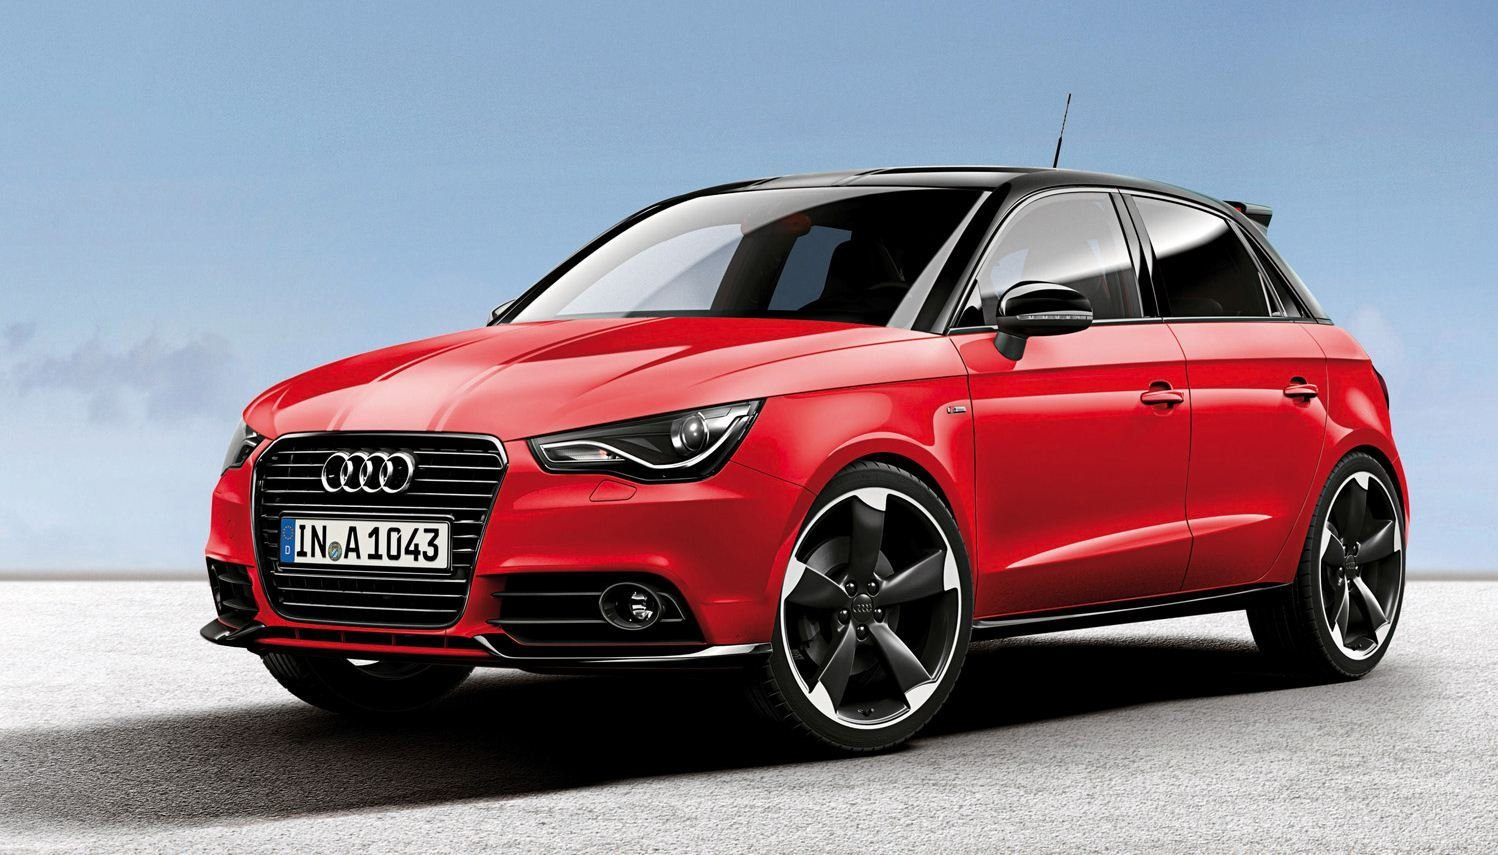 Latest Audi Volkswagen Working On 300 Mpg Cars Extremetech Free Download